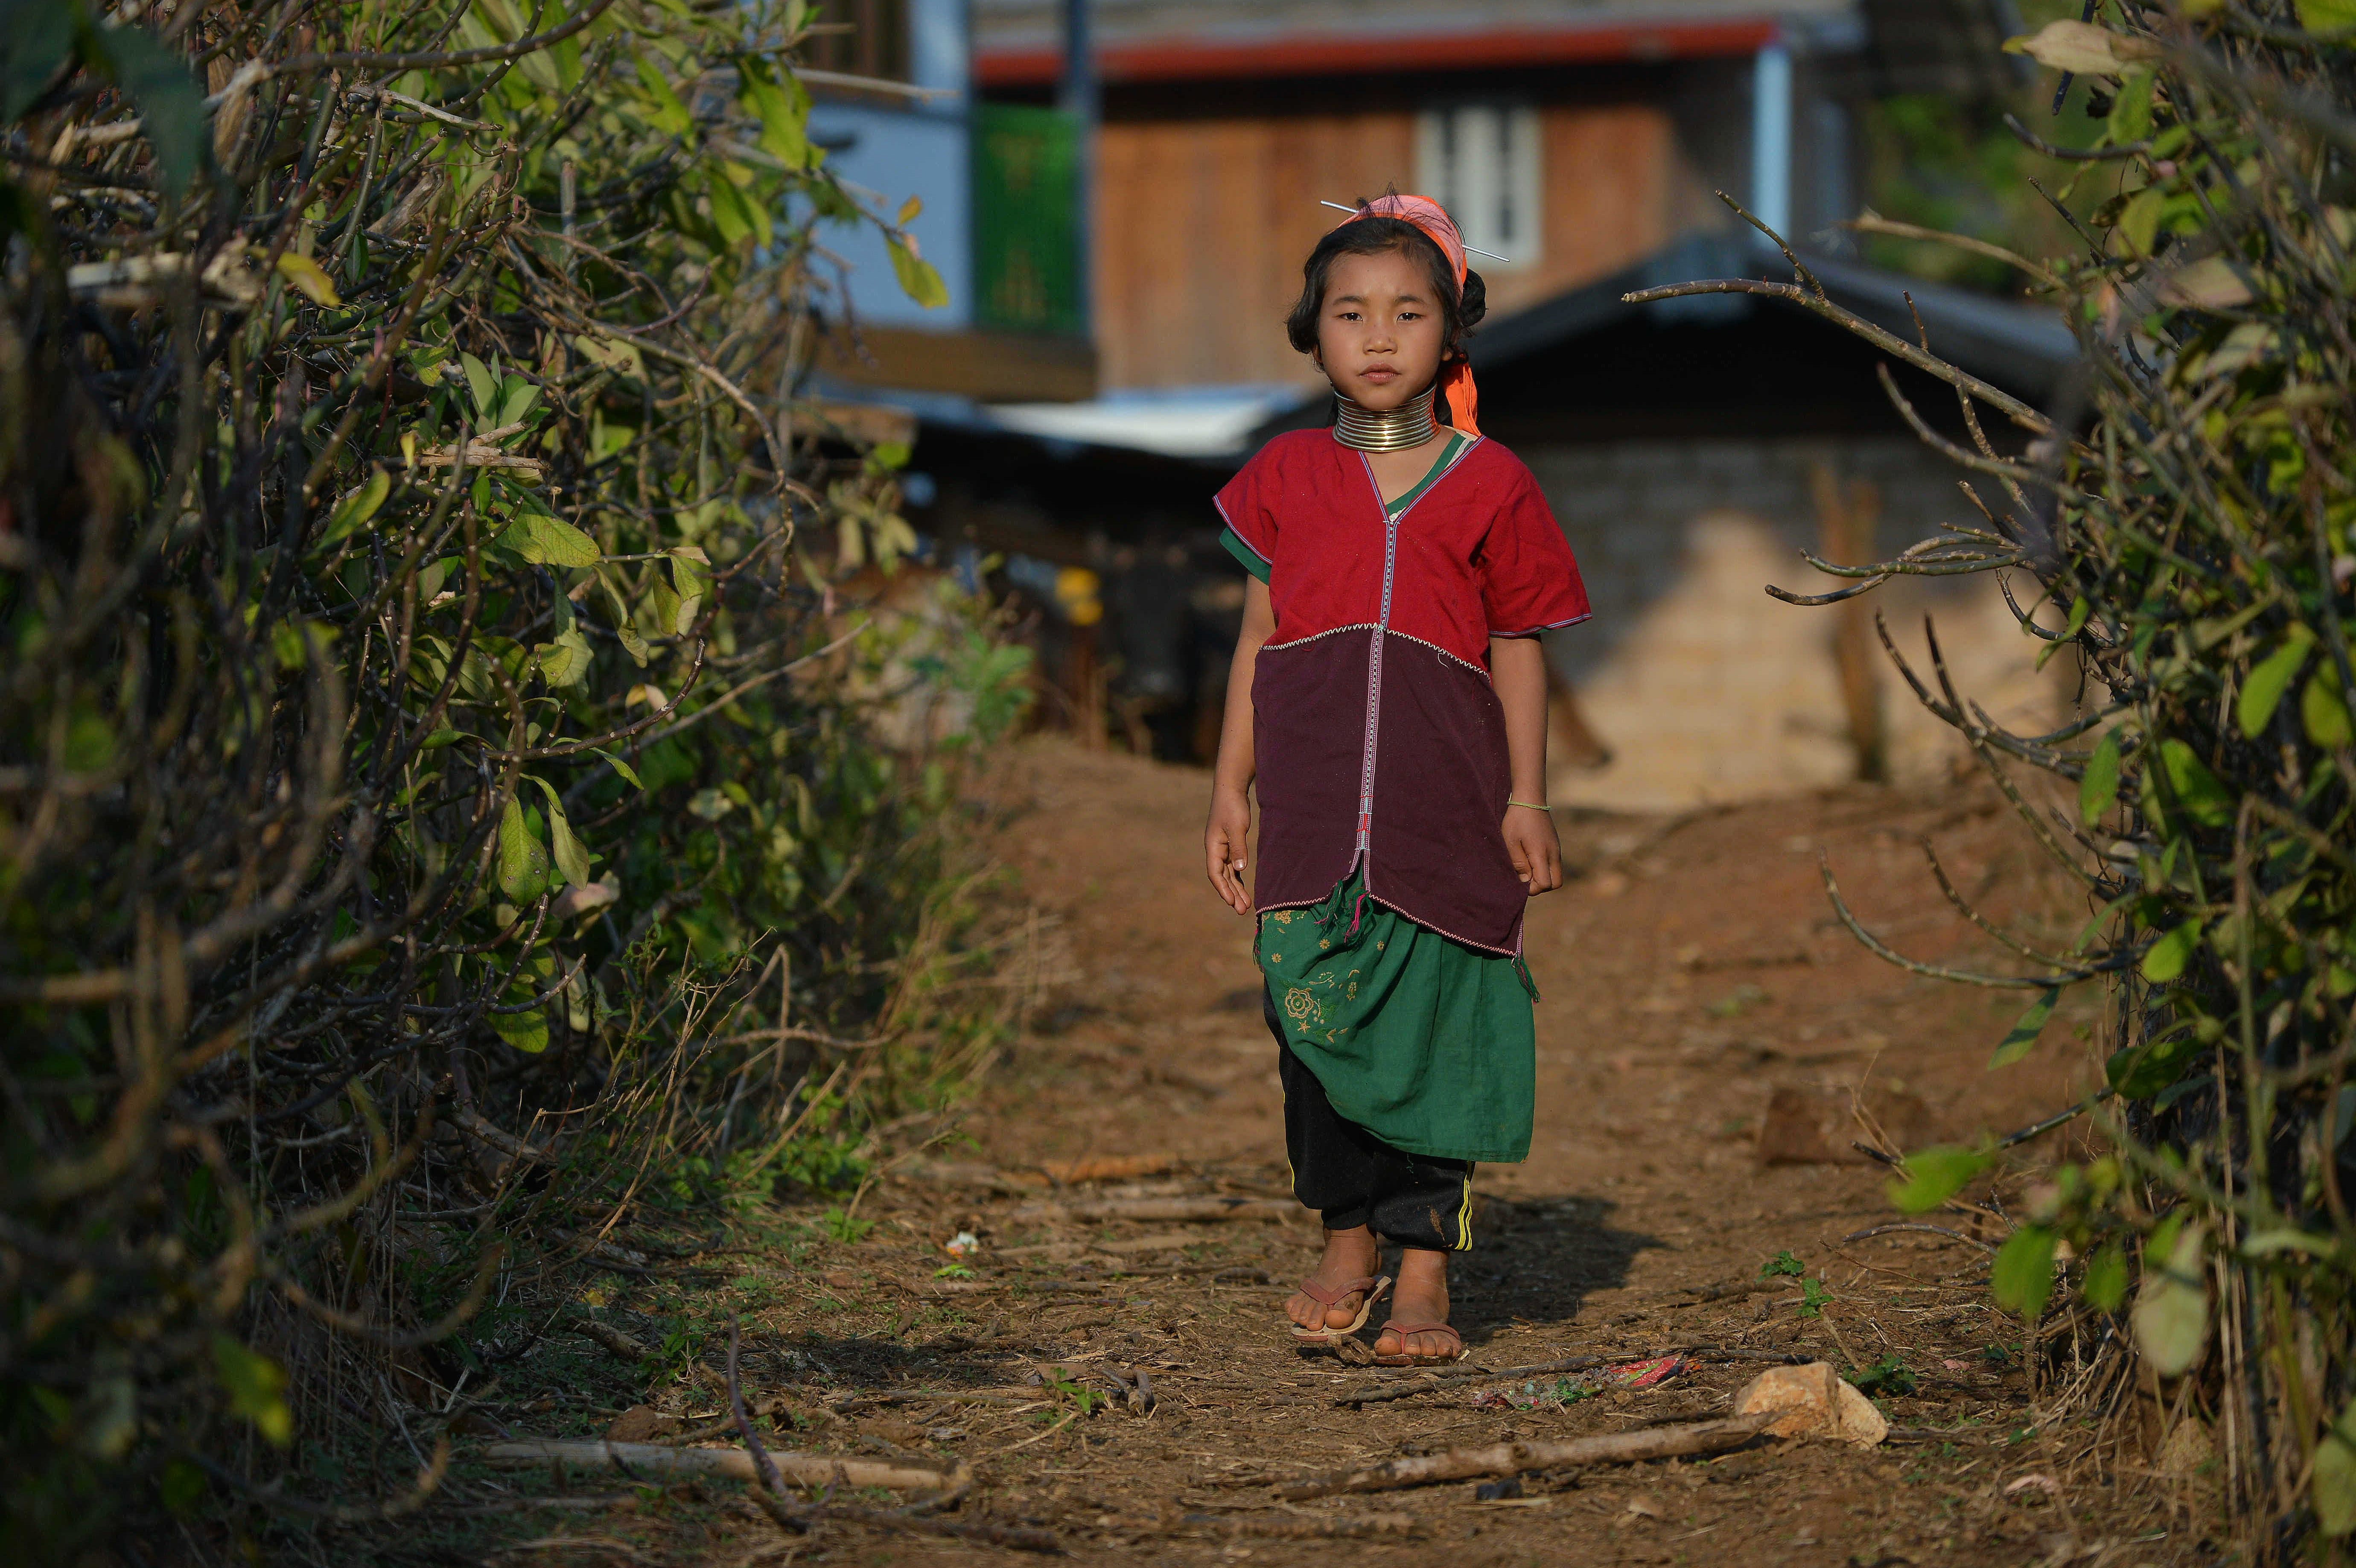 """In this picture taken on March 6, 2016 a Kayan tribesgirl wearing a stack of bronze neck coils -- the statuesque sign of beauty of her Kayan tribe -- walks in Panpet village located in Demoso township in Kayah state, central Myanmar. For years Kayan women and girls have been driven across the border by poverty and conflict to pose in holidaymakers' pictures in purpose-built Thai villages, decried by campaigners as """"human zoos"""" that exploit a vulnerable minority. / AFP PHOTO / PHYO HEIN KYAW / TO GO WITH AFP STORY: Myanmar-Thailand-tourism-leisure-culture, FEATURE by Phyo Hein Kyaw"""